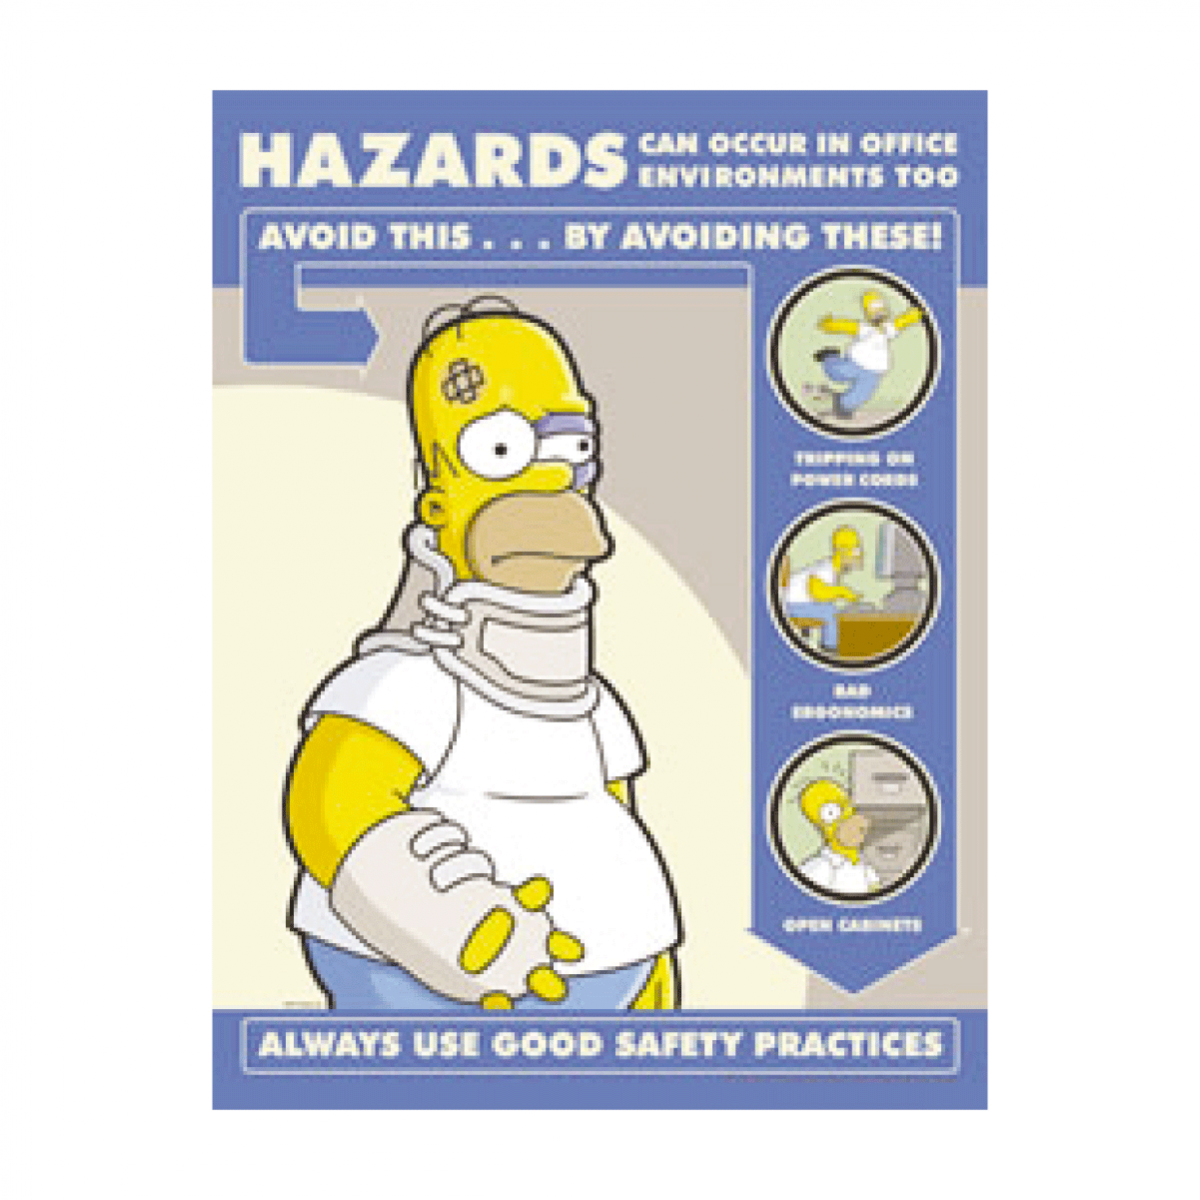 Kitchen Safety Signs Download: Simpsons Hazards In Office Environment